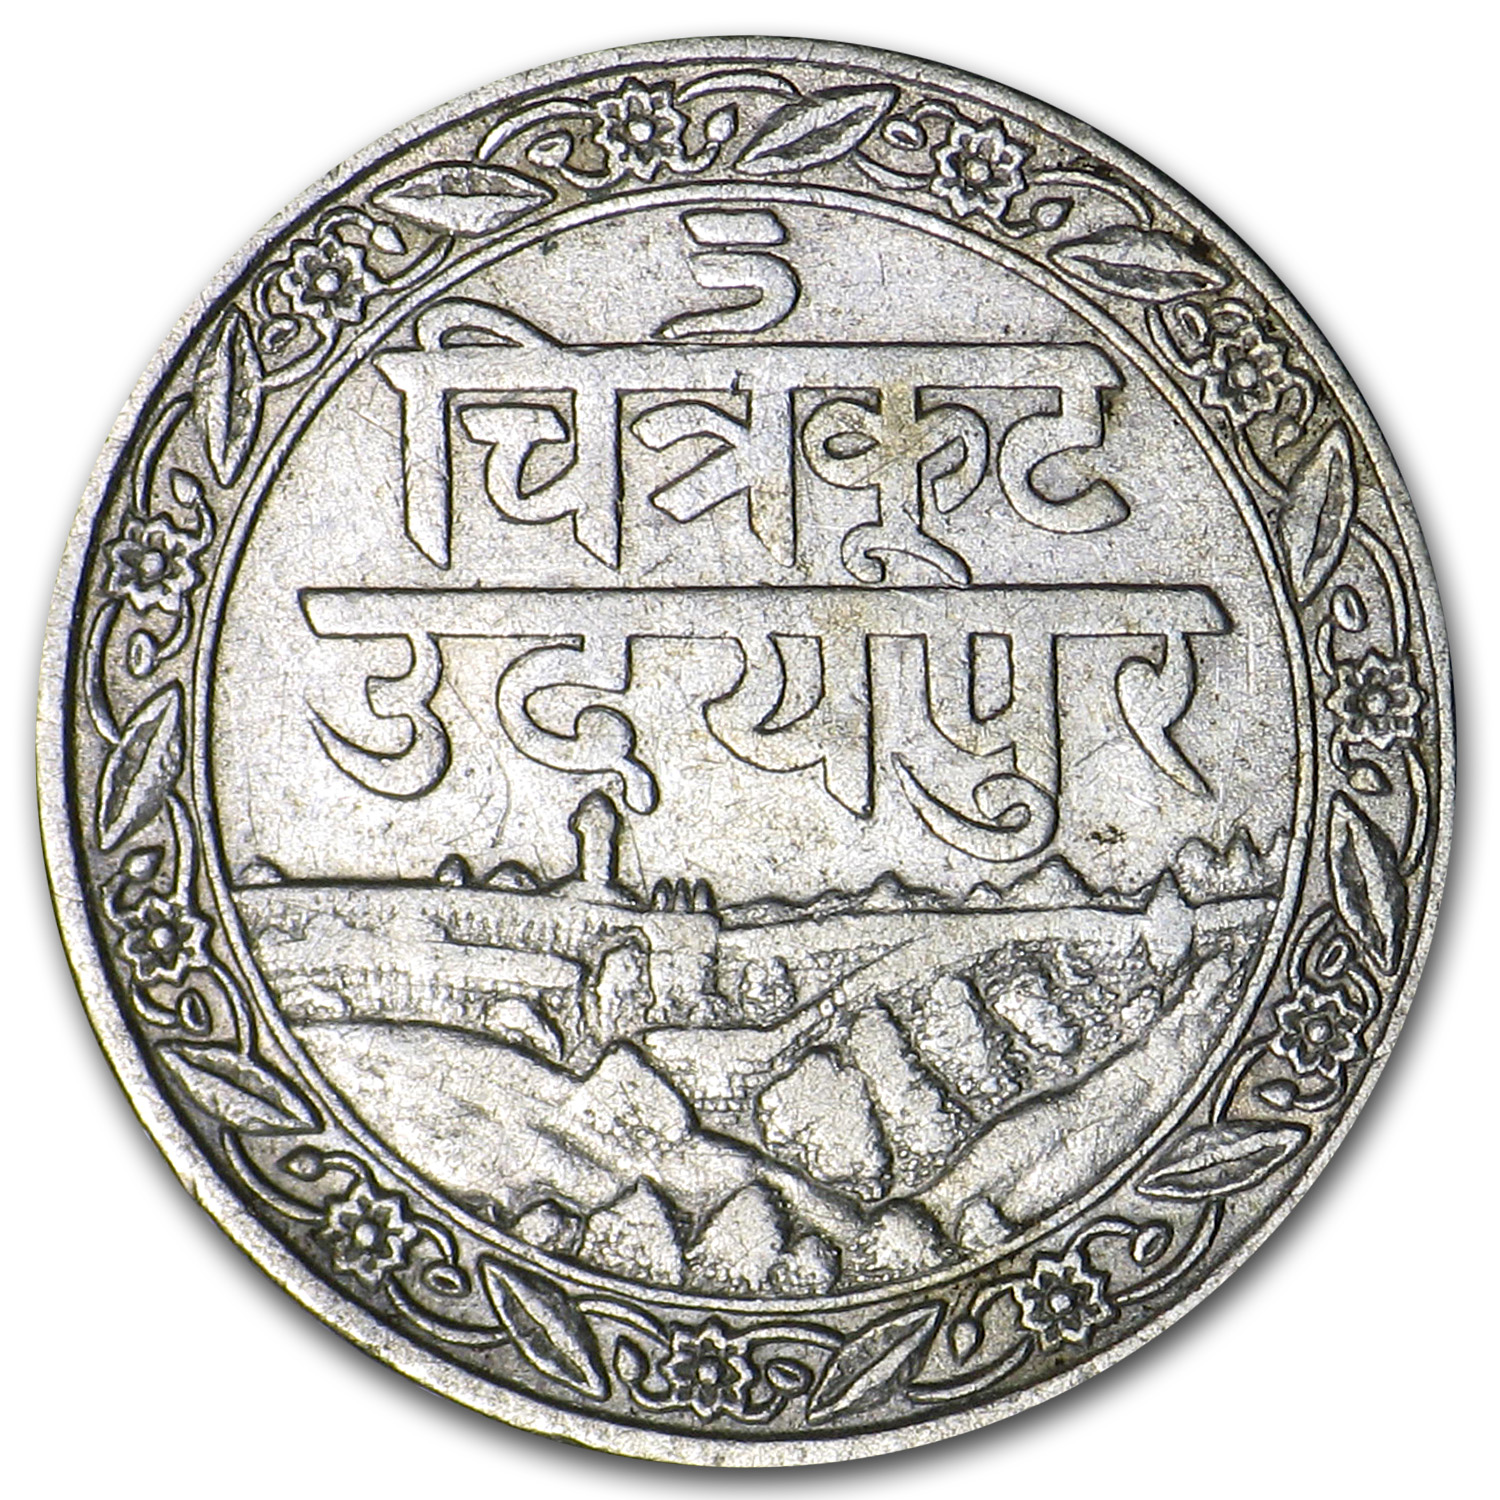 Mewar (India) VS1985(1928) 1/8 Rupee Silver VF+